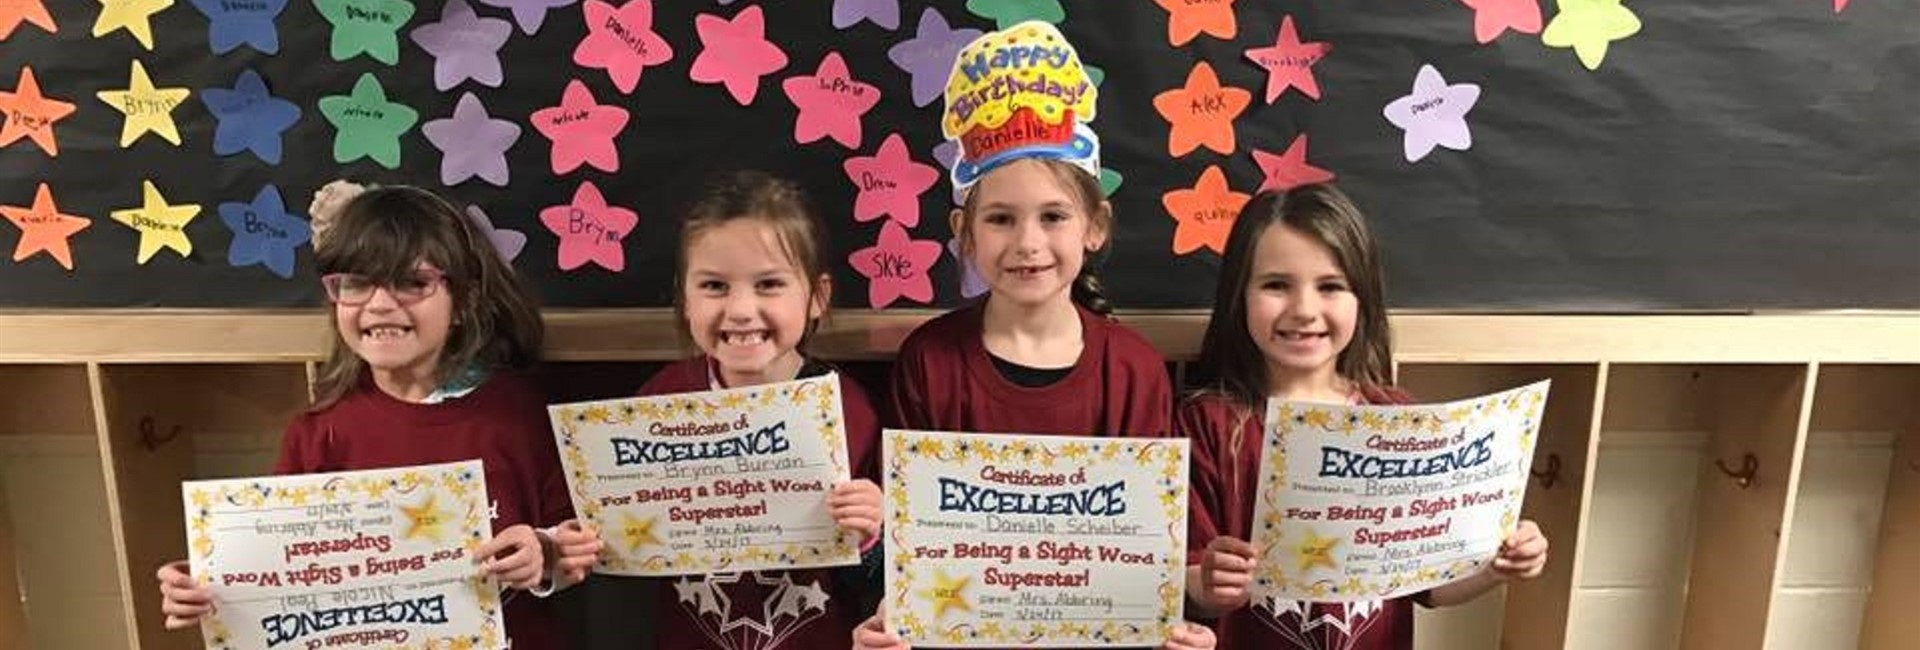 Wheatfield Elementary School Students with Sight Word Certificates